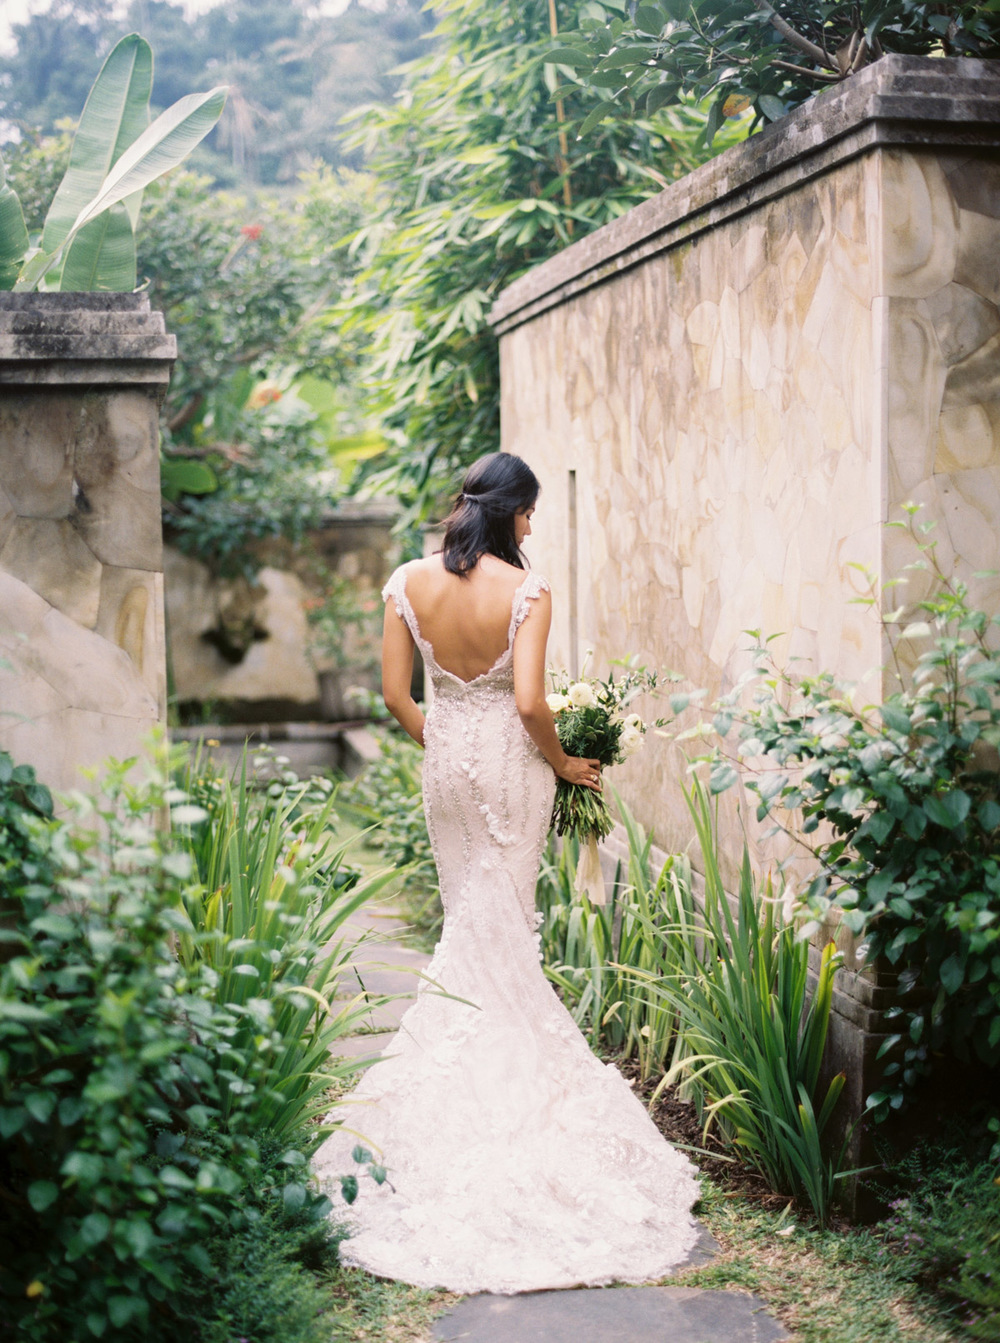 Katie Grant Photography (17 of 31).jpg